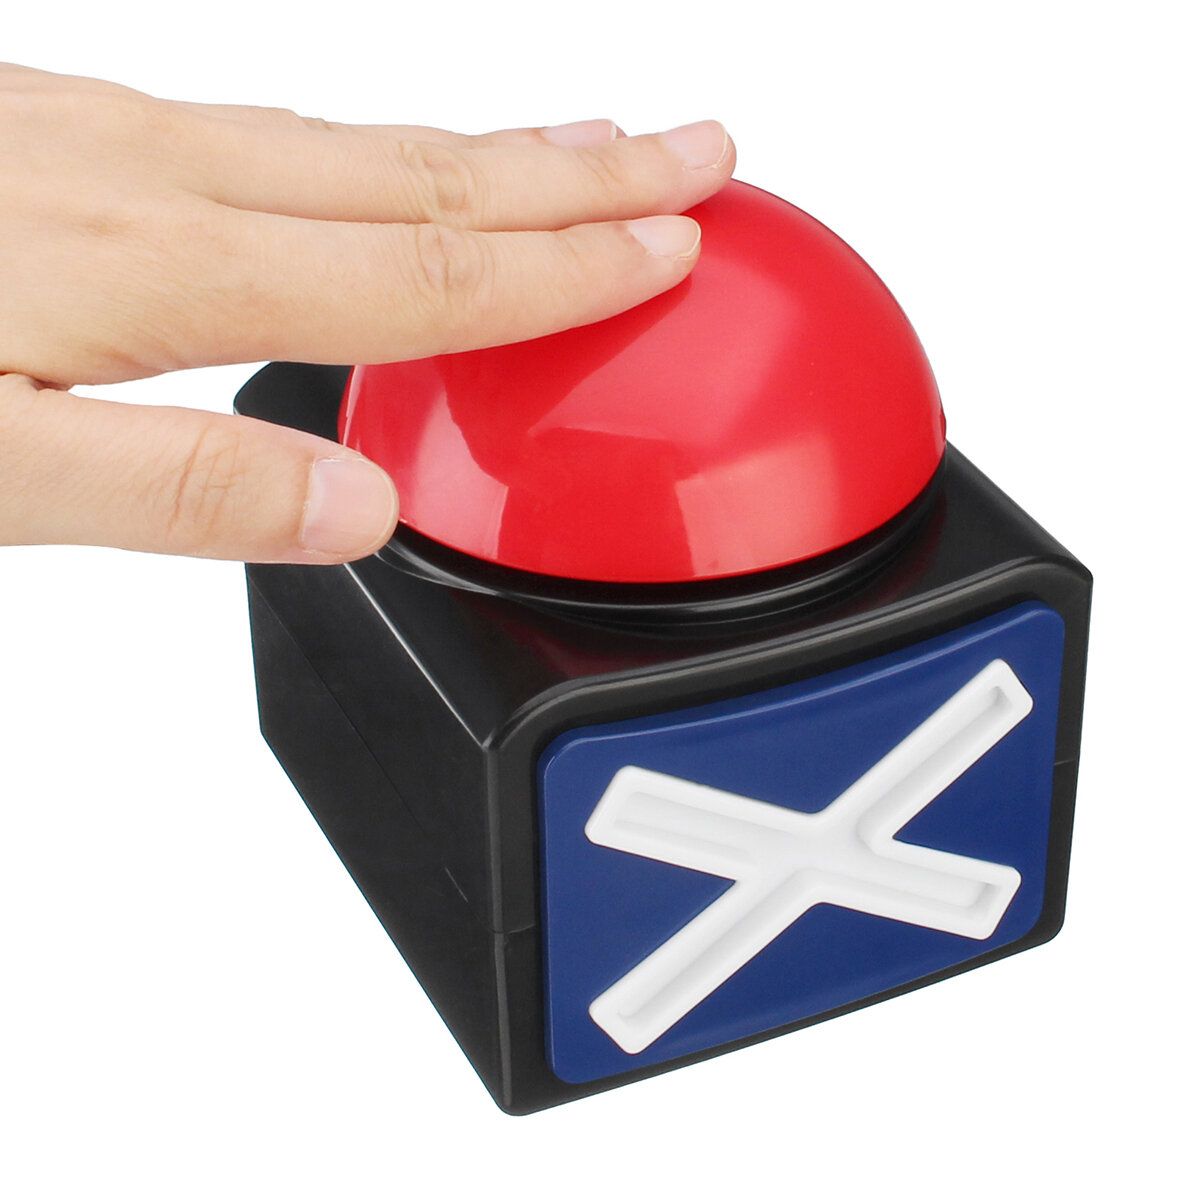 Buzzer Alarm Push Button Lottery Trivia Quiz Game Red Light With Sound And Light COD